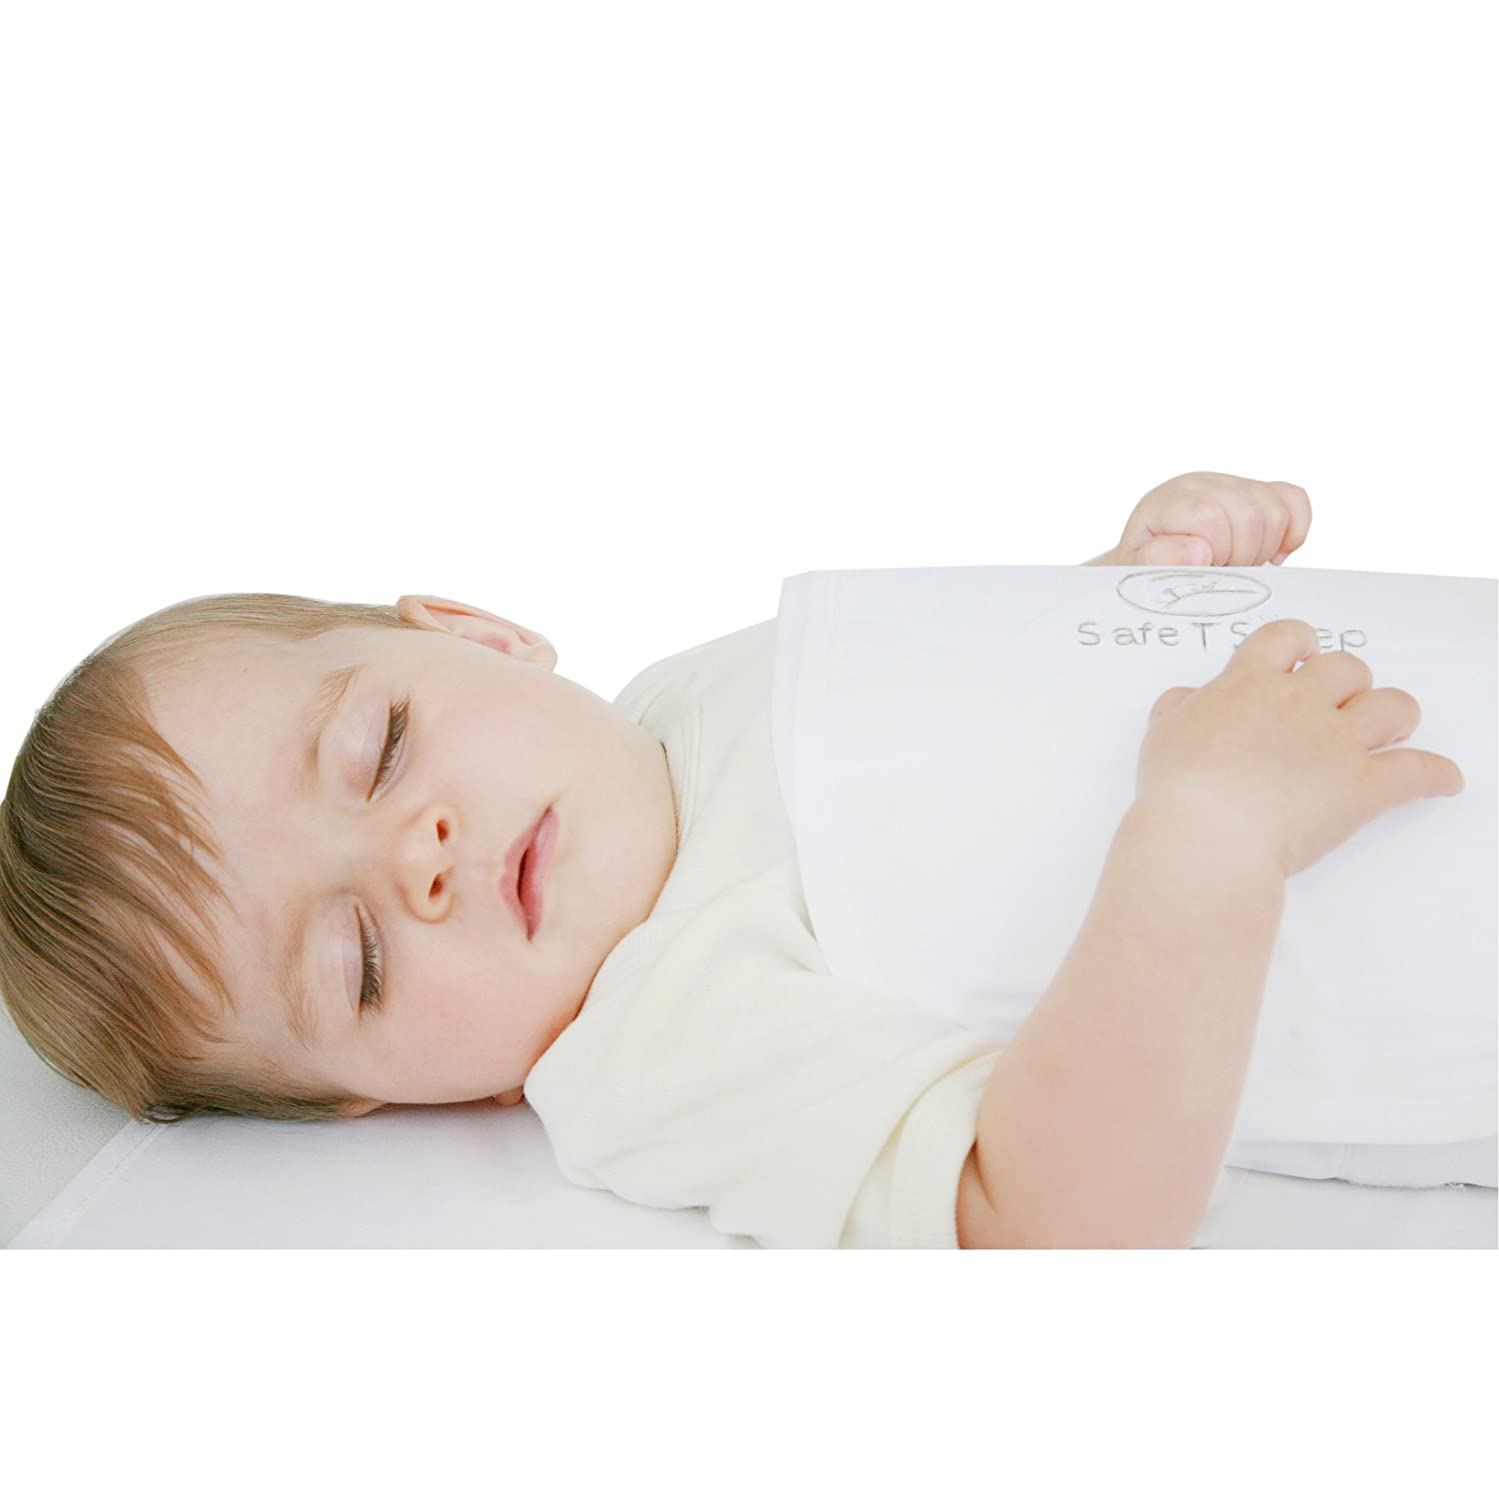 Safe T Sleep Sleepwrap Classic Baby Swaddle For Bassinets, Cribs and Single Beds SafeT sleep Classic